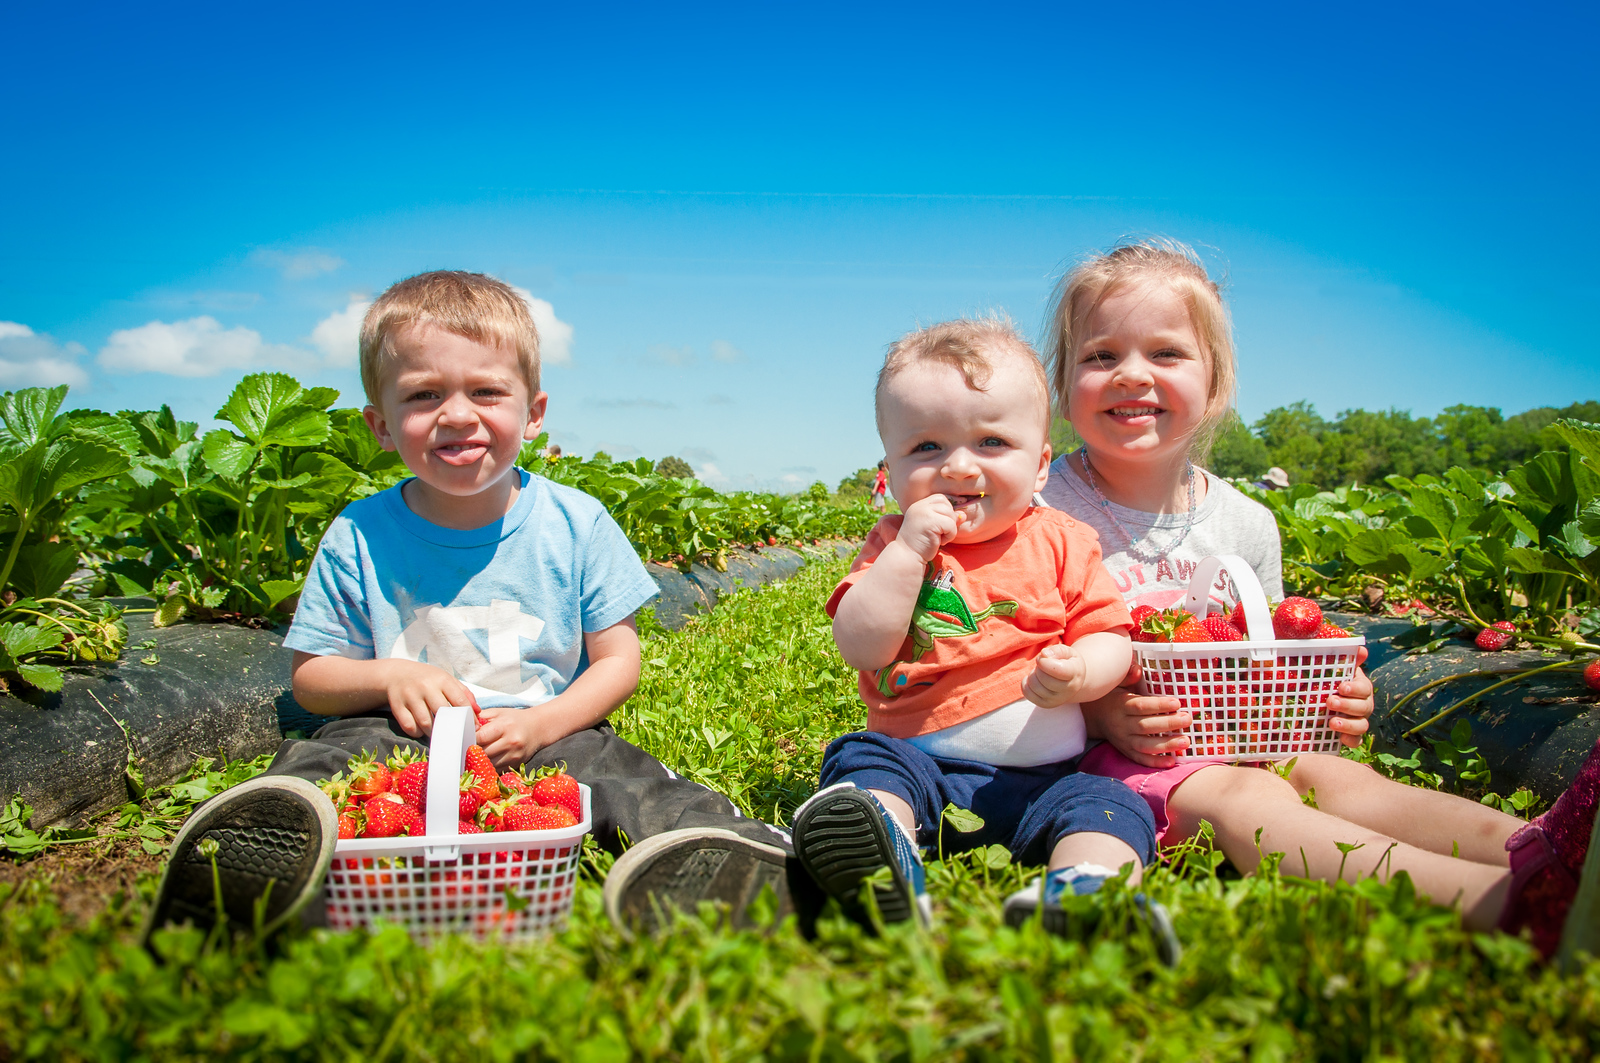 Three Kids in the Strawberry Bushes - May 9